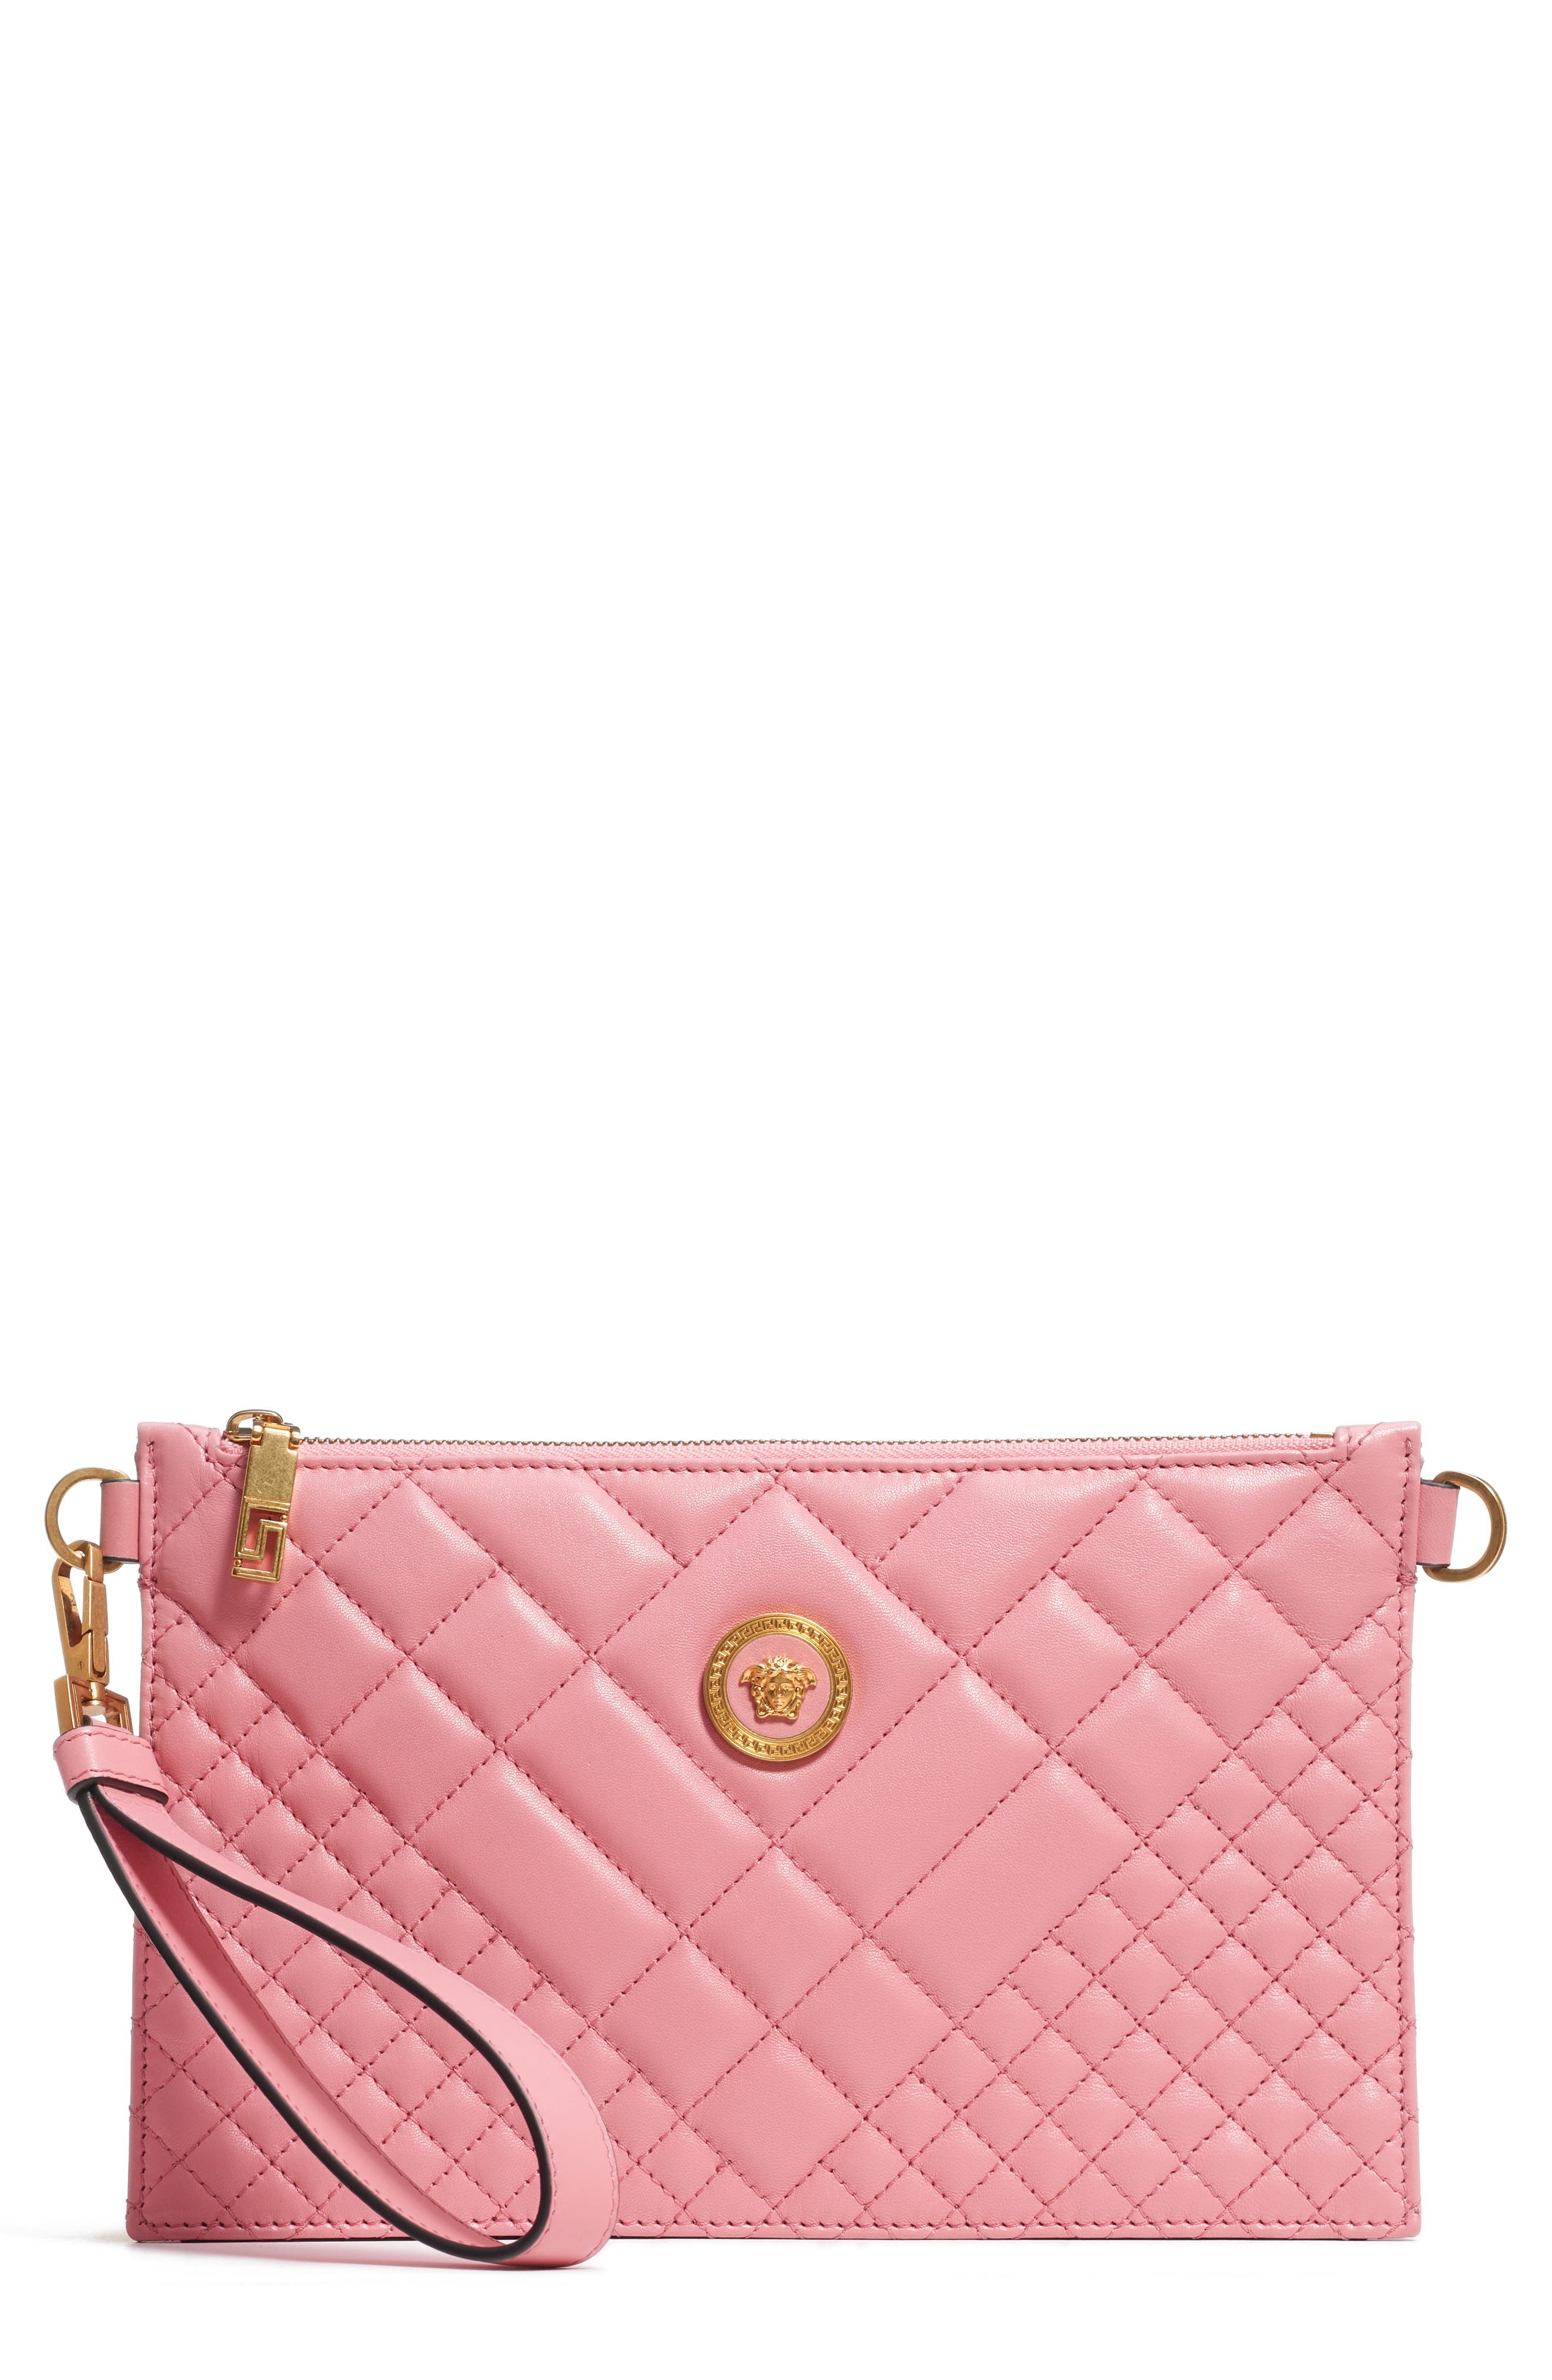 VERSACE Tribute Icon Quilted Leather Pouch, Main, color, SHELL PINK/ TRIBUTE GOLD